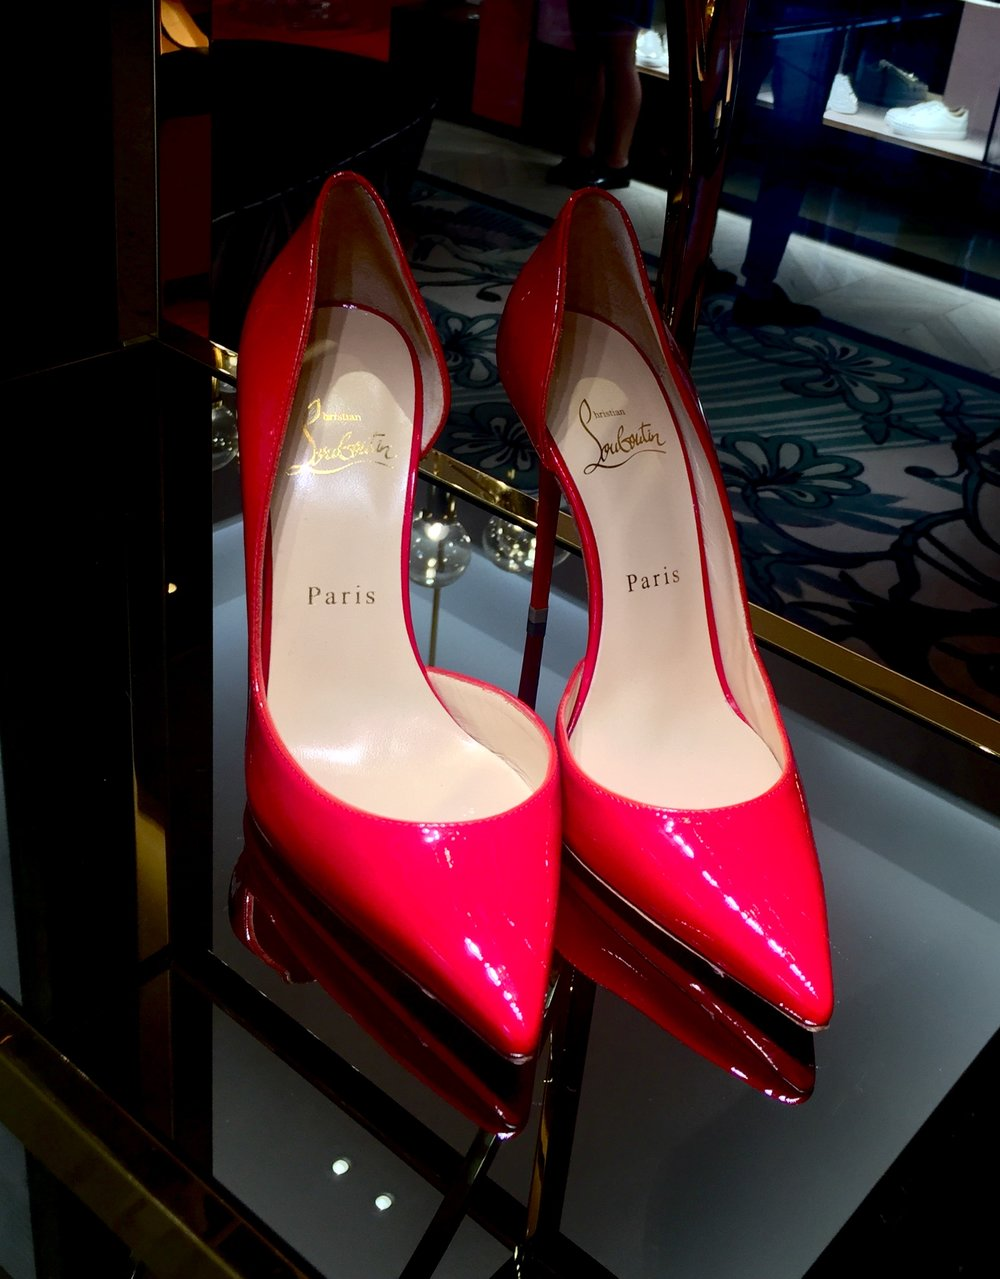 Red Shoes ©Sean Ginnane 2018 Fujifilm XT-1, 18-55mm lens  Nothing like a pair of beautiful Louboutins to symbolise the Red theme.